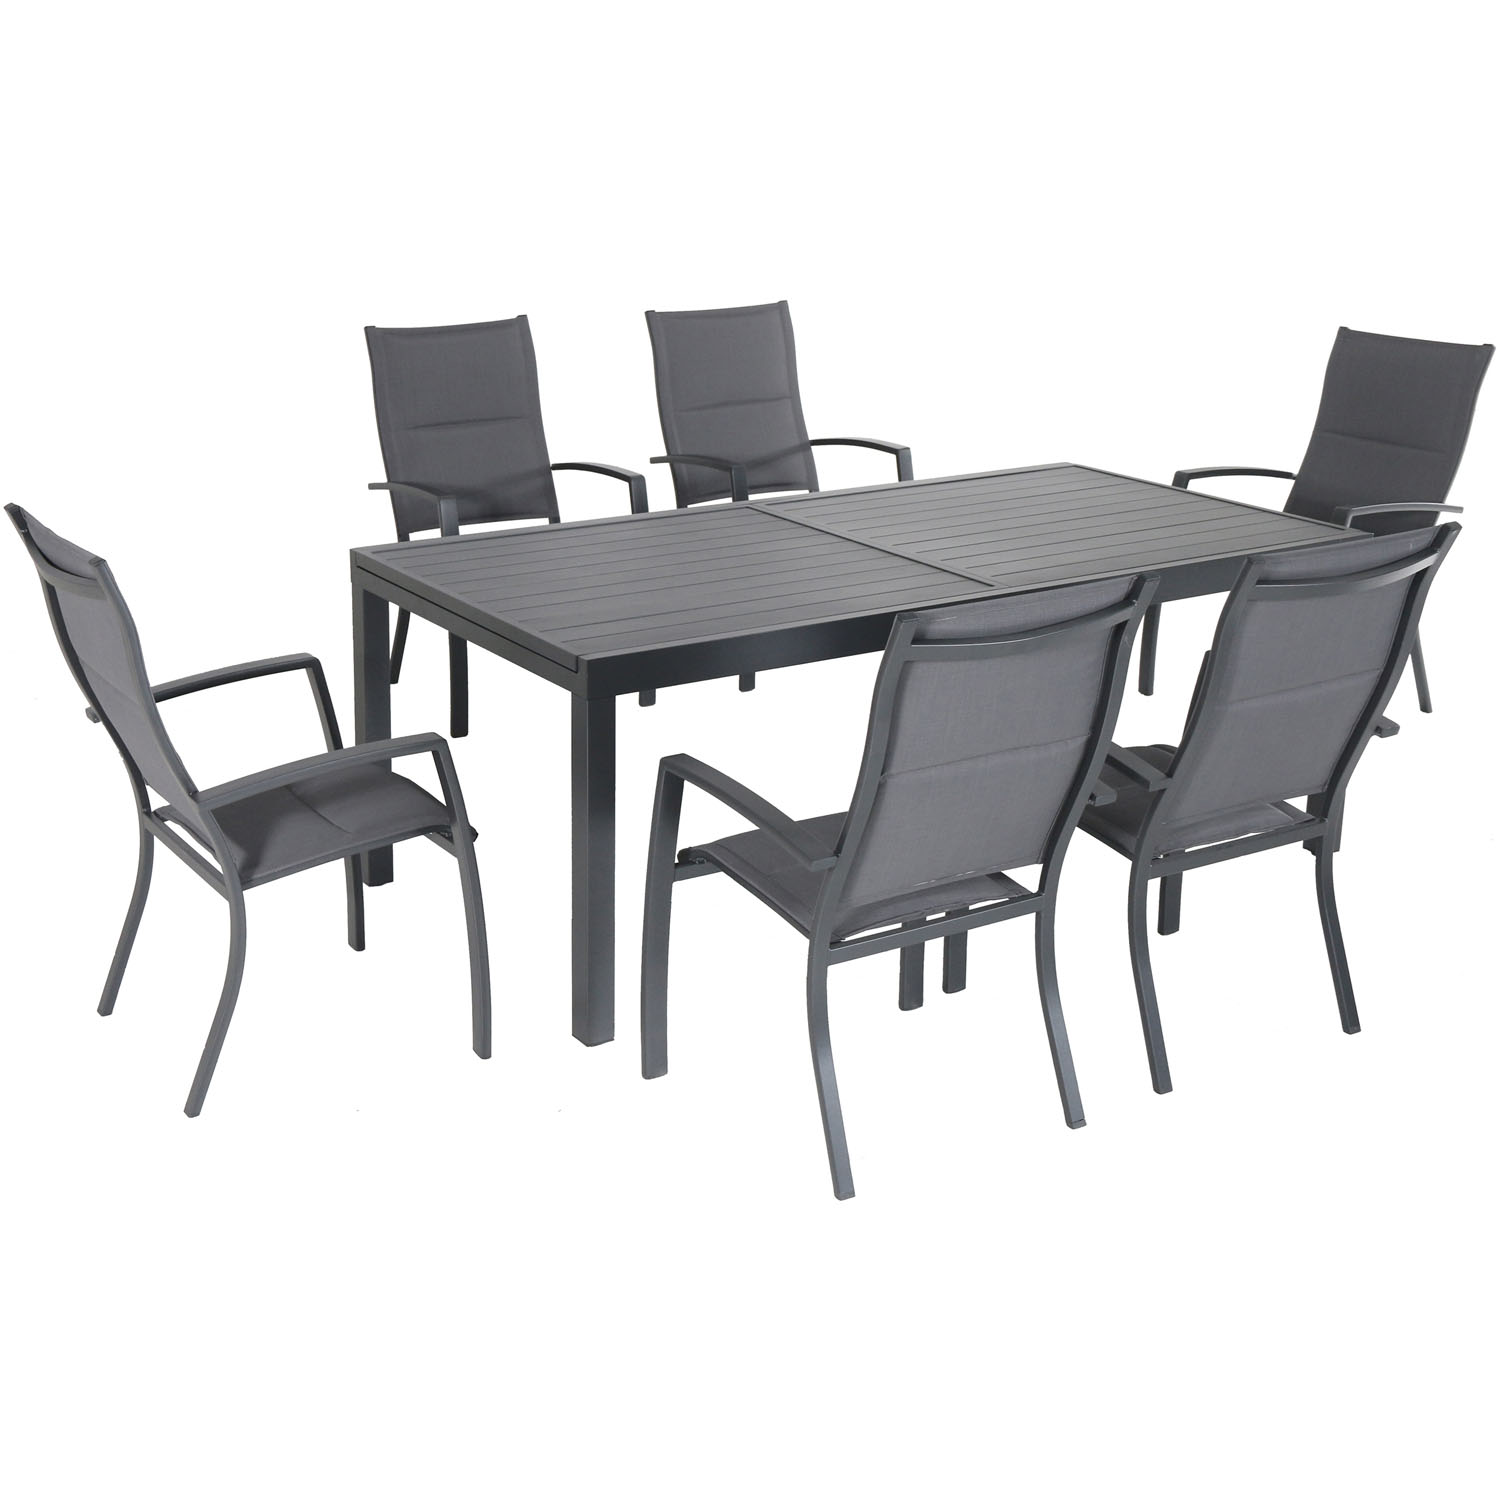 """Hanover Naples 7-Piece Outdoor Dining Set w/ 6 Padded Sling Chairs in Gray and 40"""" x 78"""" Dining Table"""